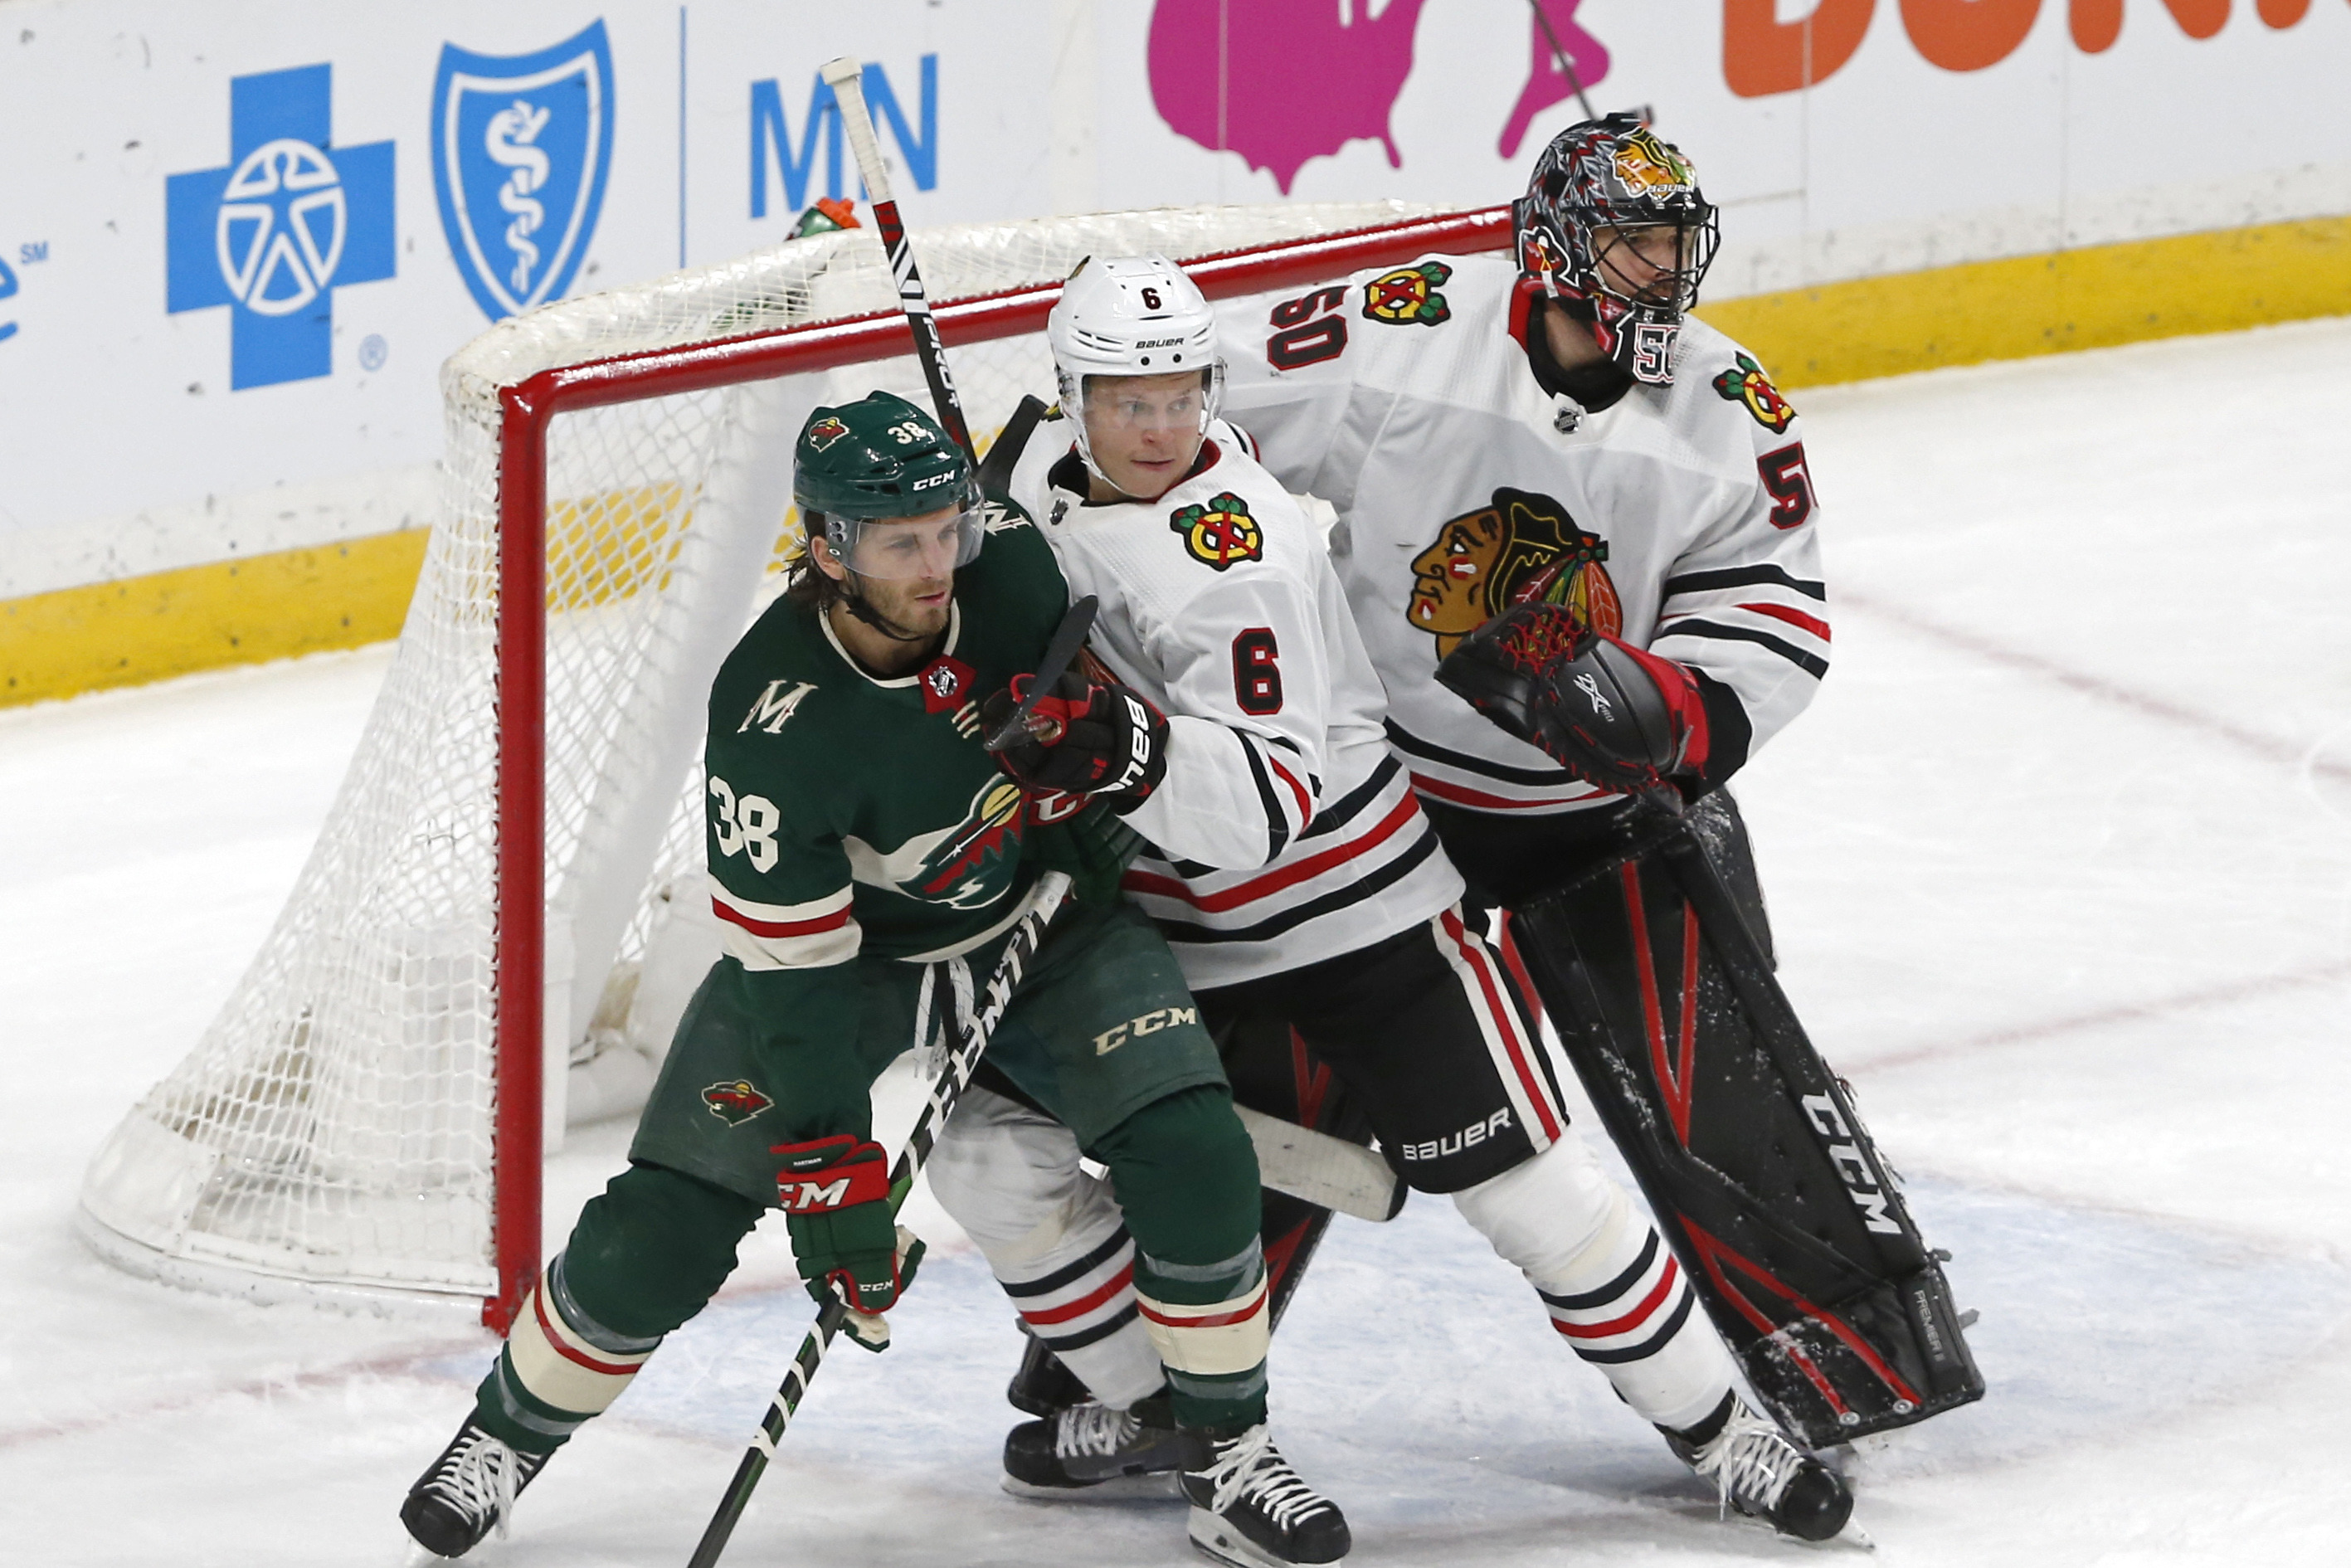 The Blackhawks may end up playing out their season after all, but it won't be an exciting stretch run.